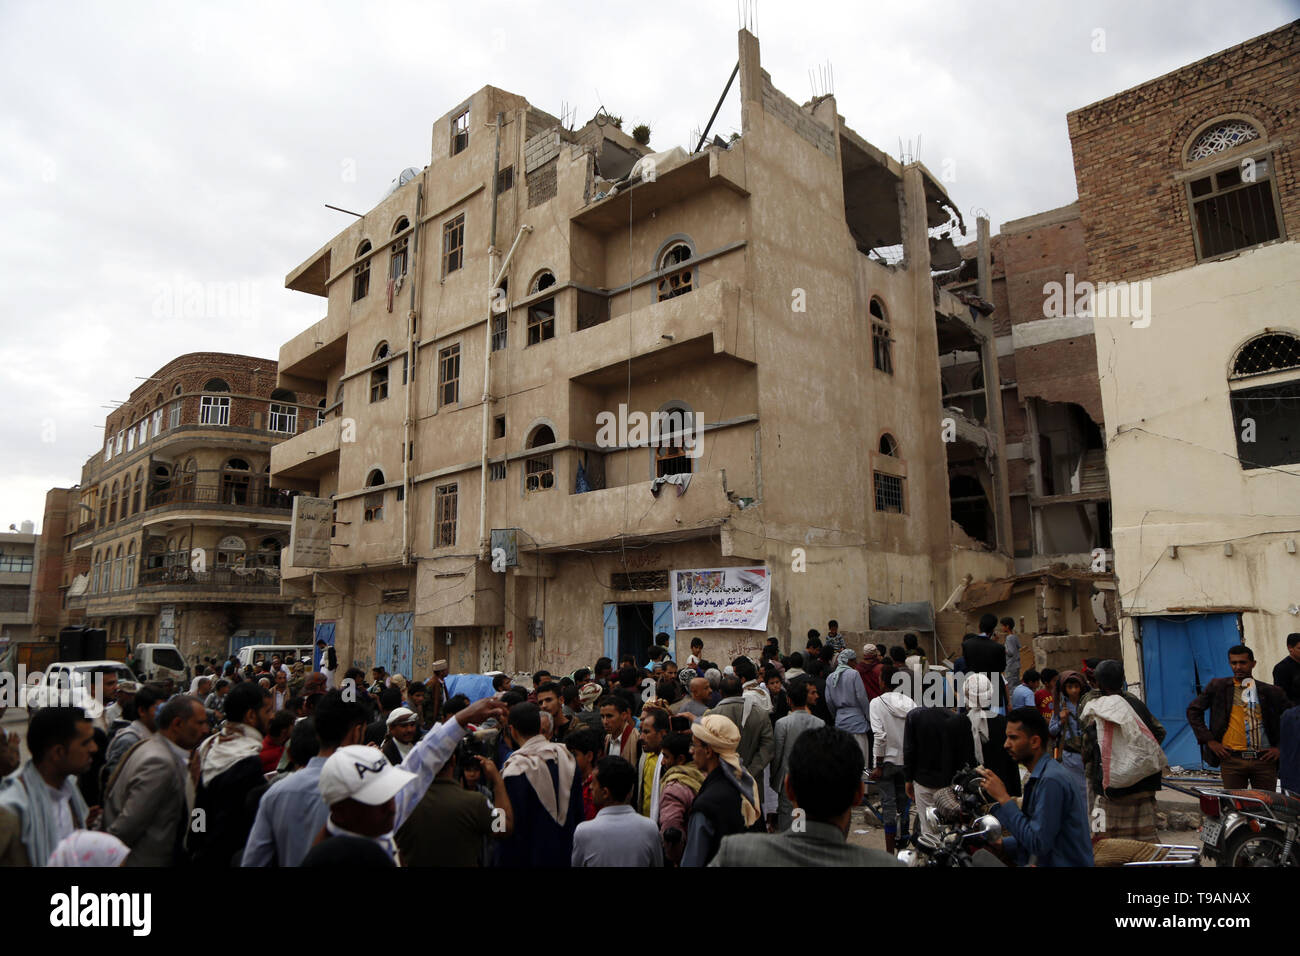 Sanaa, Yemen. 17th May, 2019. Yemeni protesters take part in a rally in an area hit by airstrikes in Sanaa, Yemen, on May 17, 2019. The Saudi Arabia-led coalition launched airstrikes on Houthi rebels' targets in the Yemeni capital Sanaa on Thursday morning, causing civilian casualties and damages, authorities and local residents said. Credit: Mohammed Mohammed/Xinhua/Alamy Live News - Stock Image